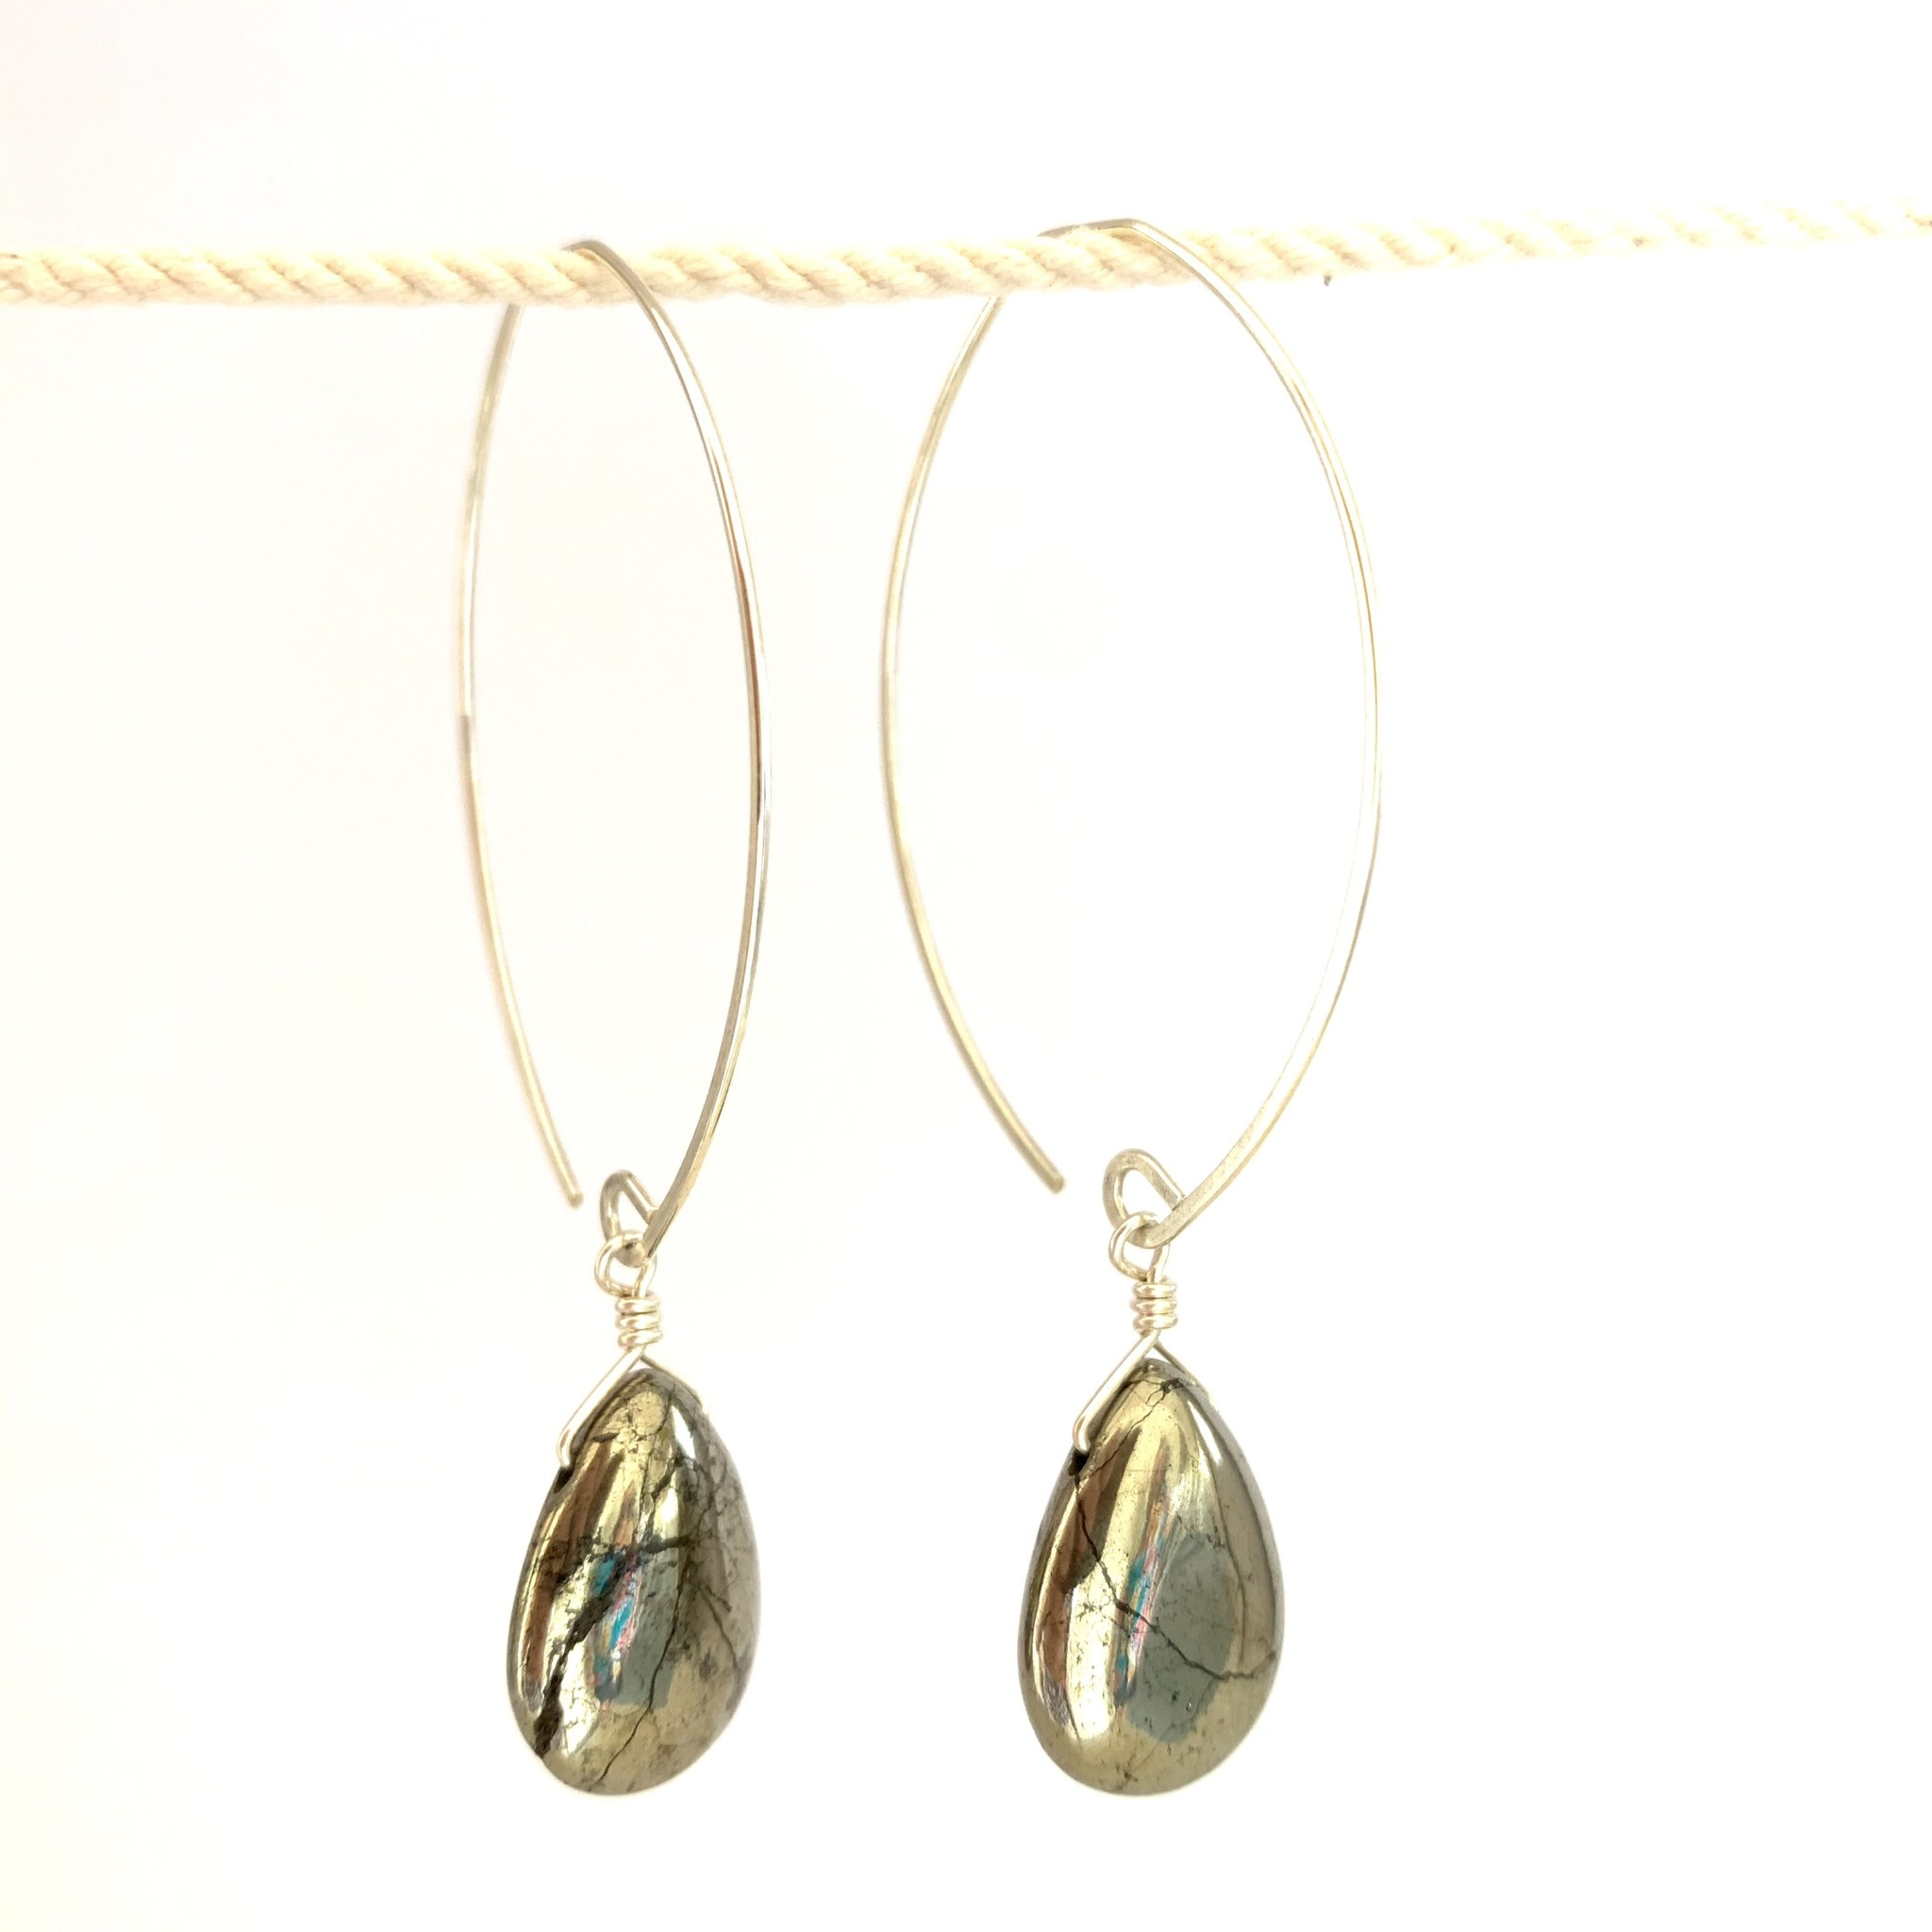 Noon Jewelry Core Collection Earrings - sterling silver